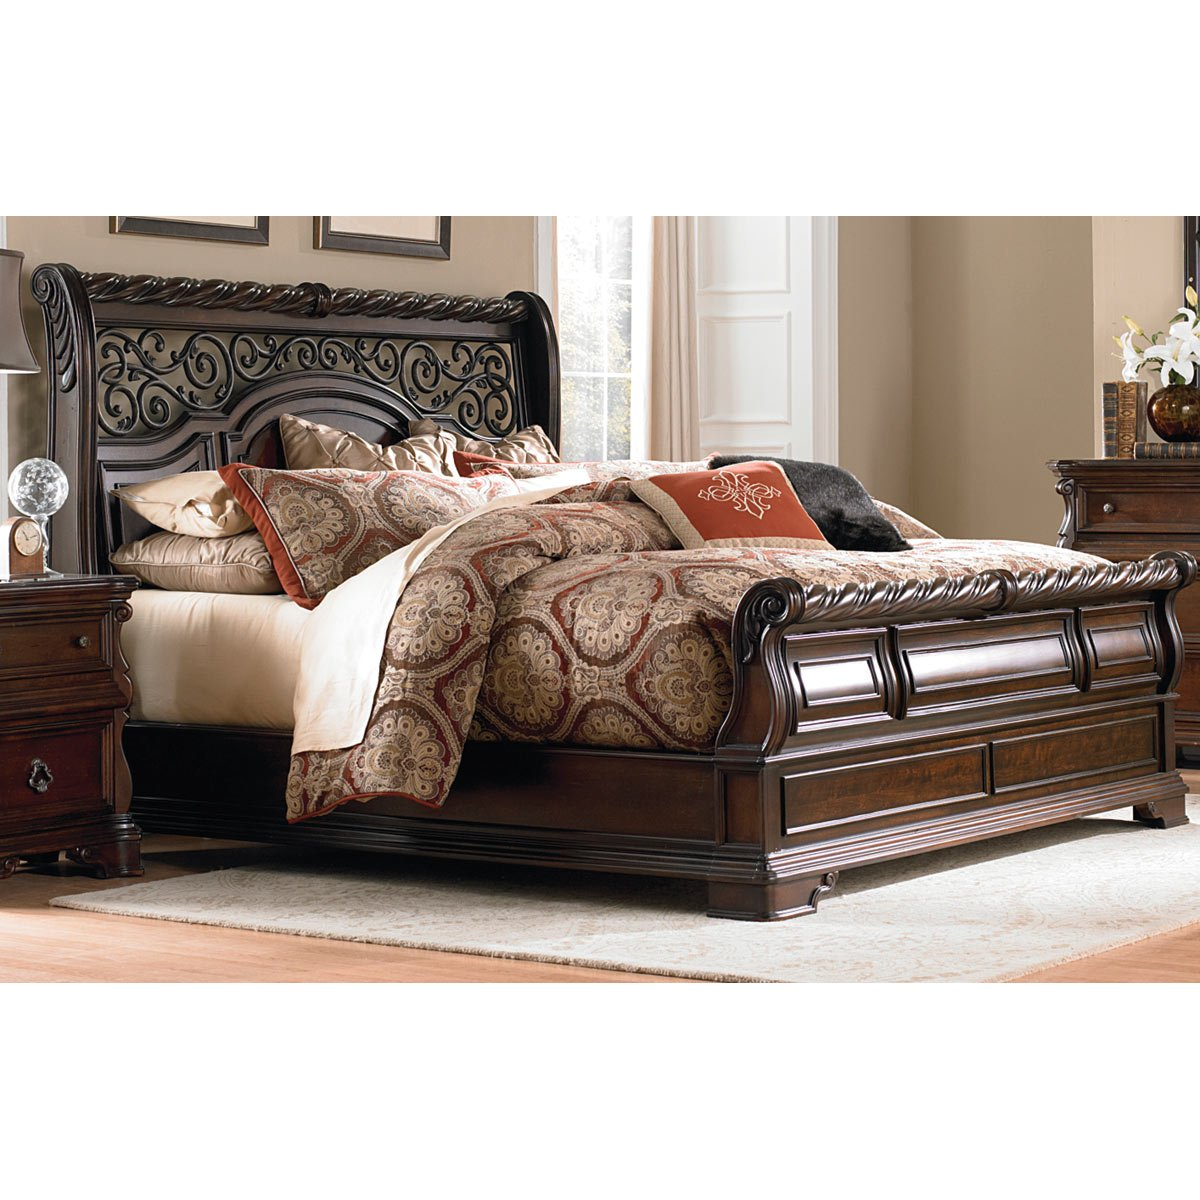 Sleigh Bed Headboard Traditional Brown King Size Sleigh Bed Arbor Place